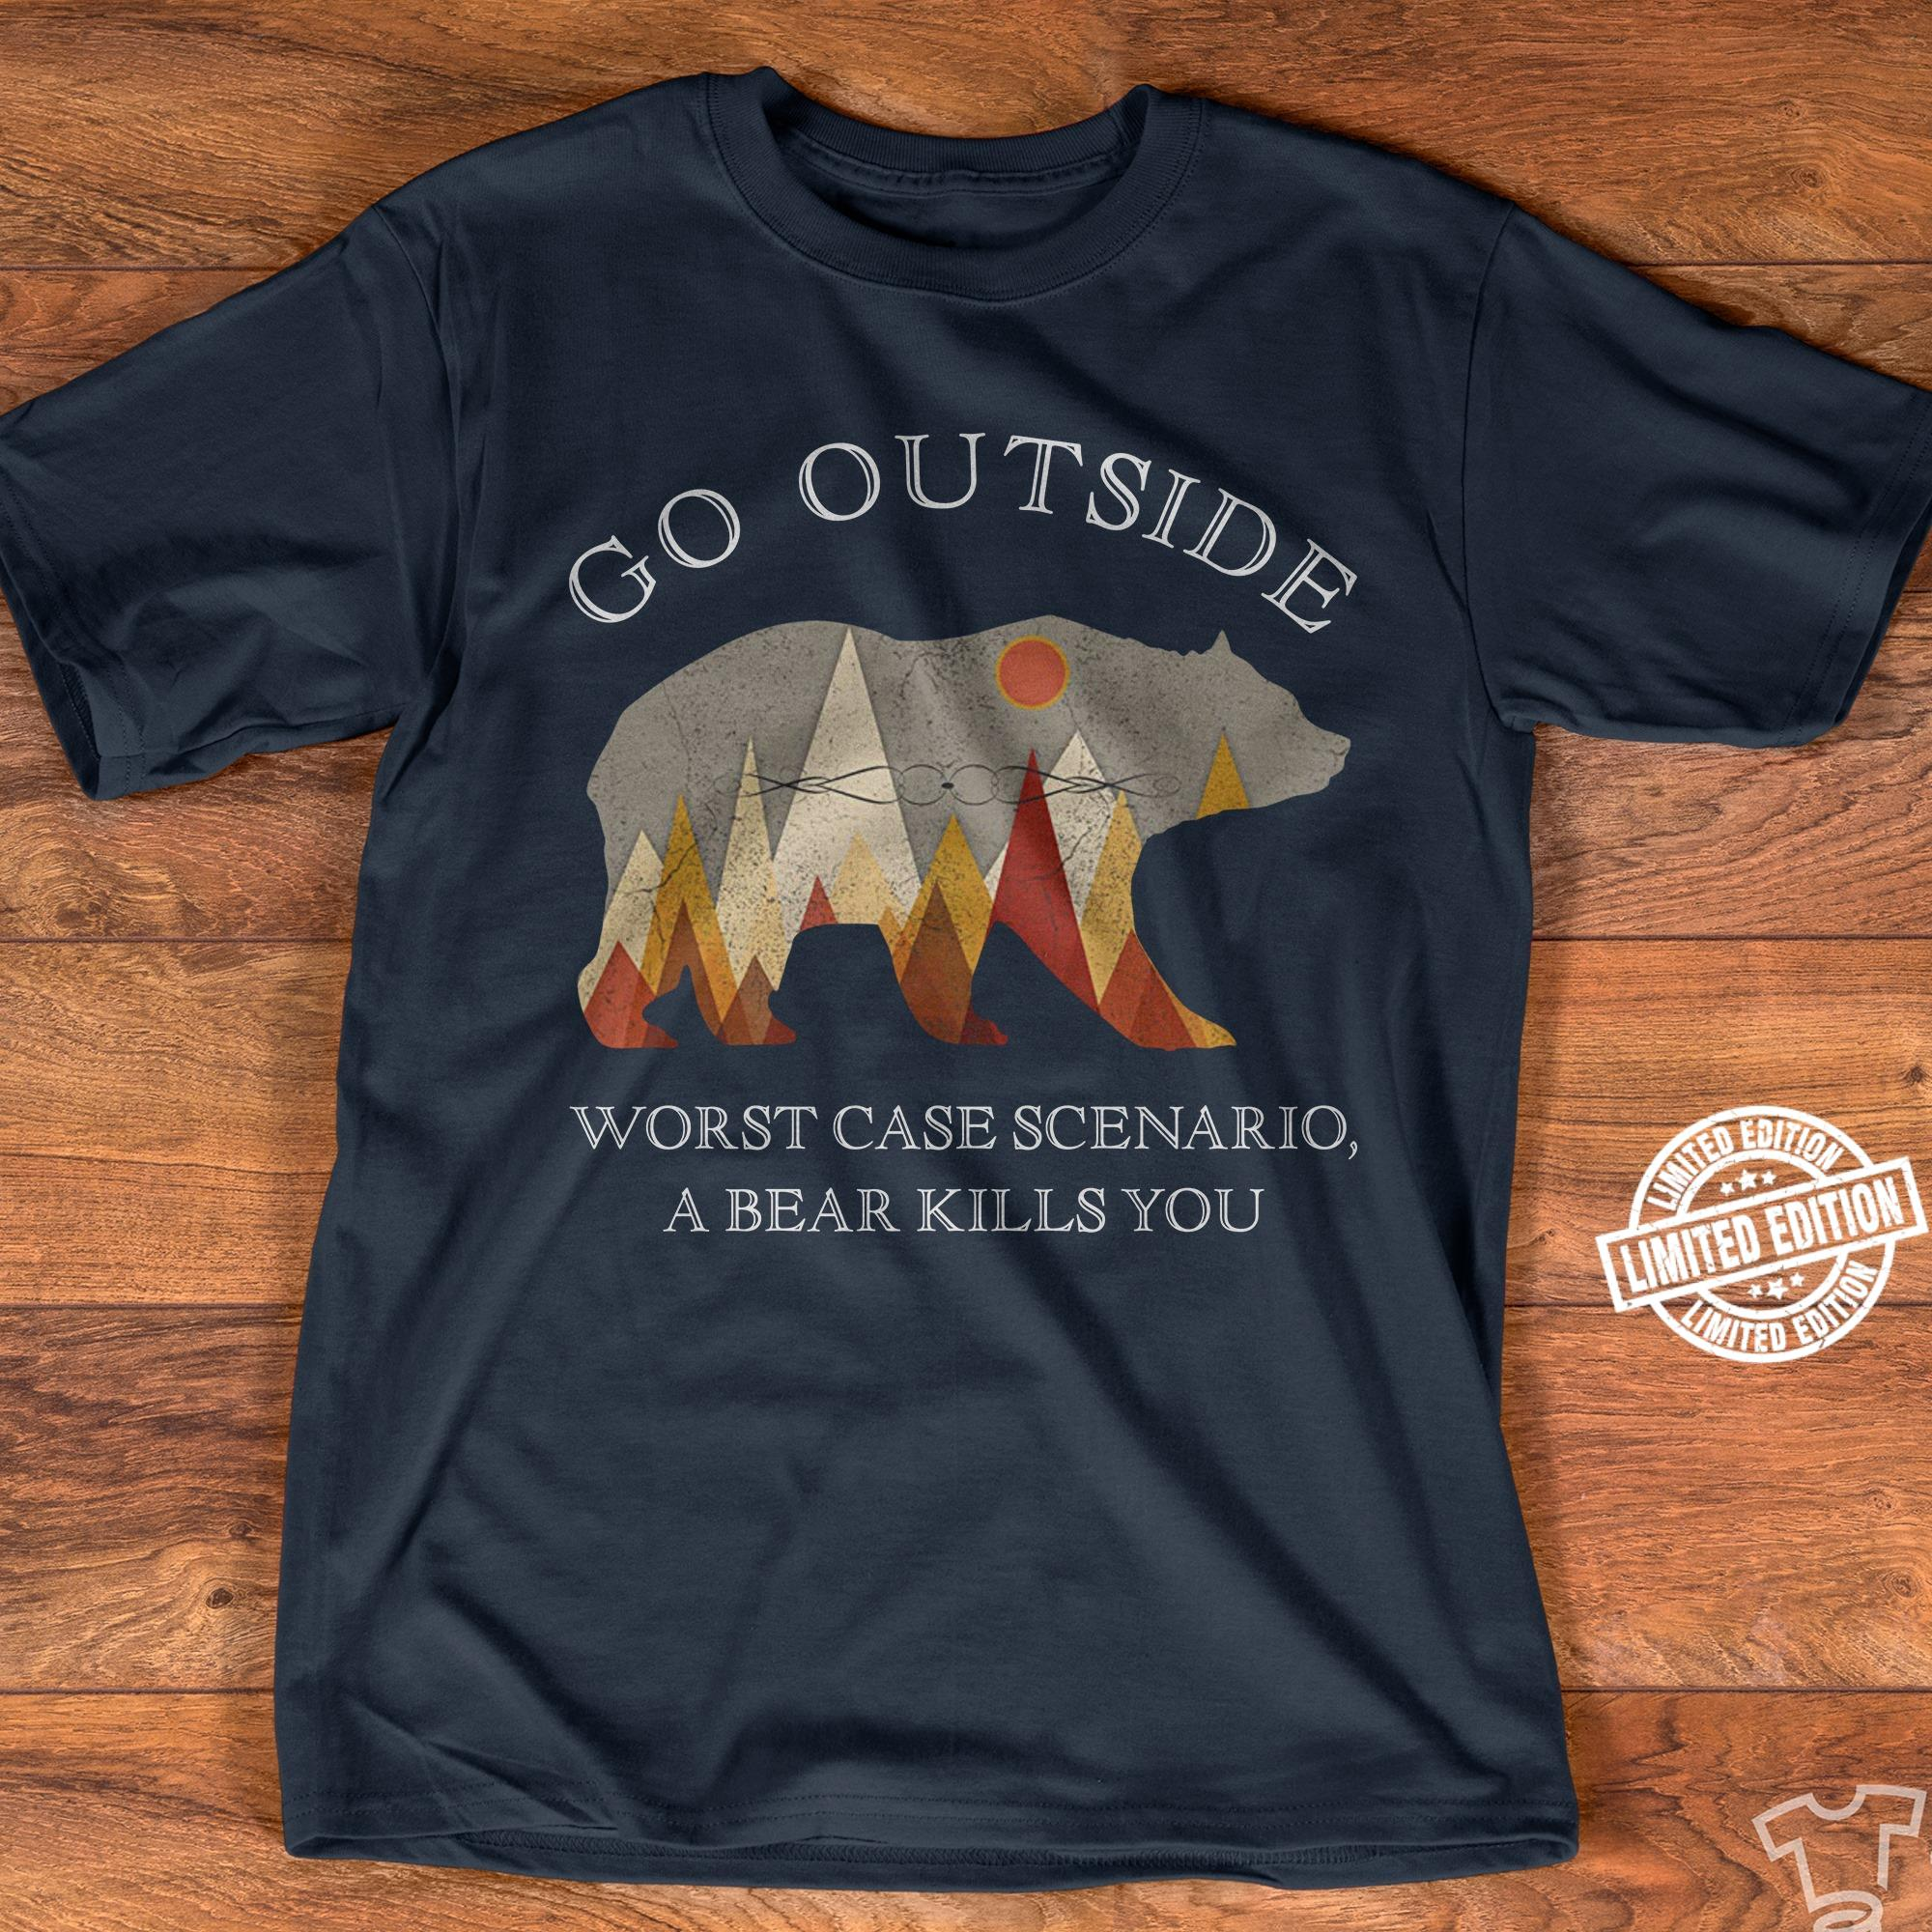 Go outside worst case scenario a bear kills you shirt